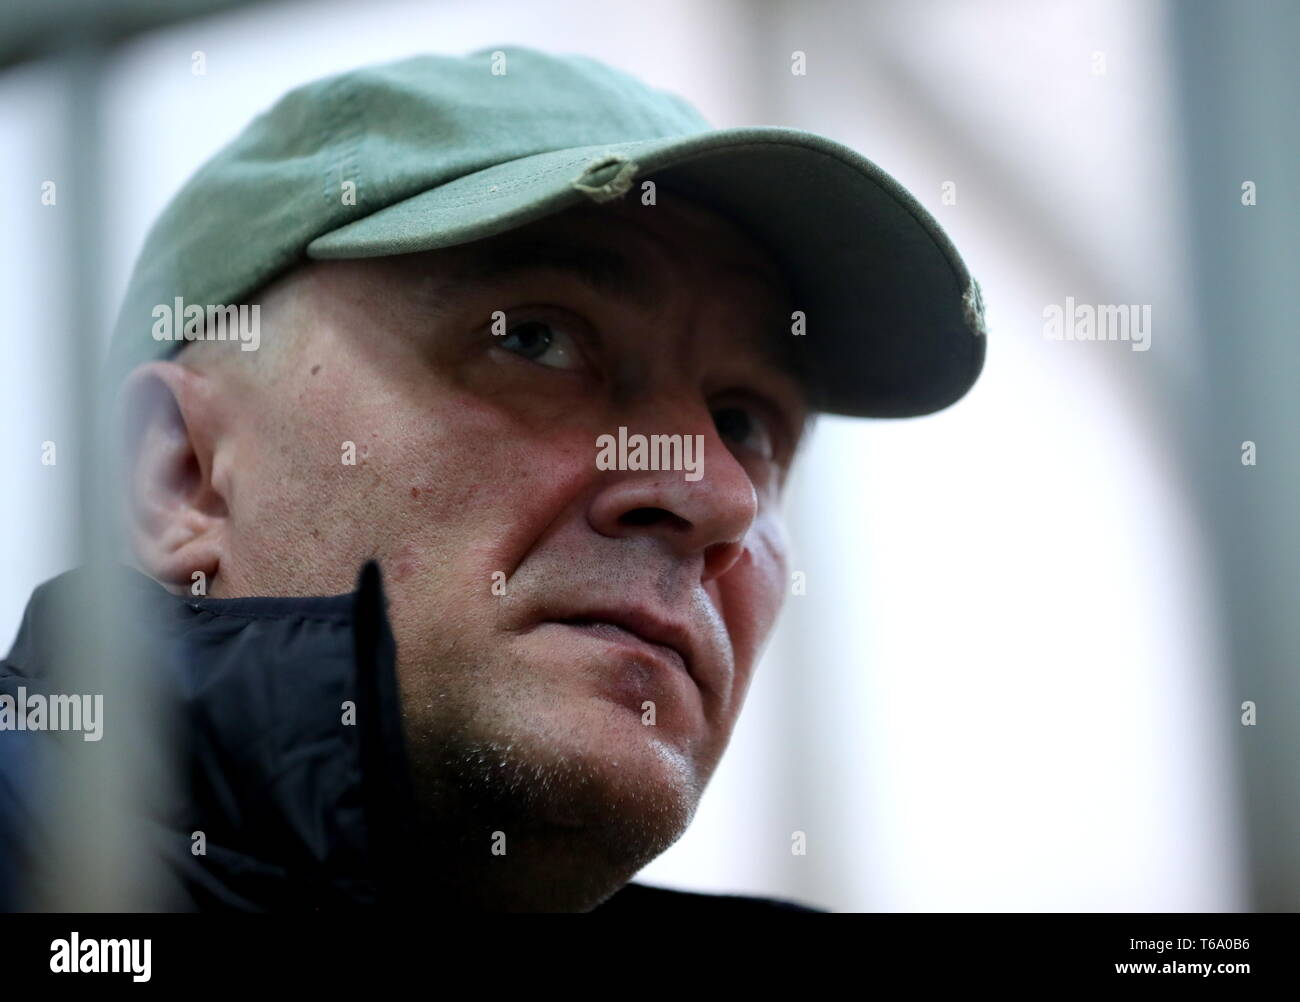 Moscow, Russia. 30th Apr, 2019. MOSCOW, RUSSIA - APRIL 30, 2019: Igor Podporin, charged with damaging a cultural artefact, appears for a sentence hearing at Moscow's Zamoskvoretsky Distric Court. On May 26, 2018, Podporin attacked Ilya Repin's painting Ivan the Terrible and His Son Ivan (valued at approximately 720 million roubles) with a metal pole at the State Tretyakov Gallery. Experts say the cost of the damage is estimated at around 30 million roubles. Mikhail Tereshchenko/TASS Credit: ITAR-TASS News Agency/Alamy Live News - Stock Image